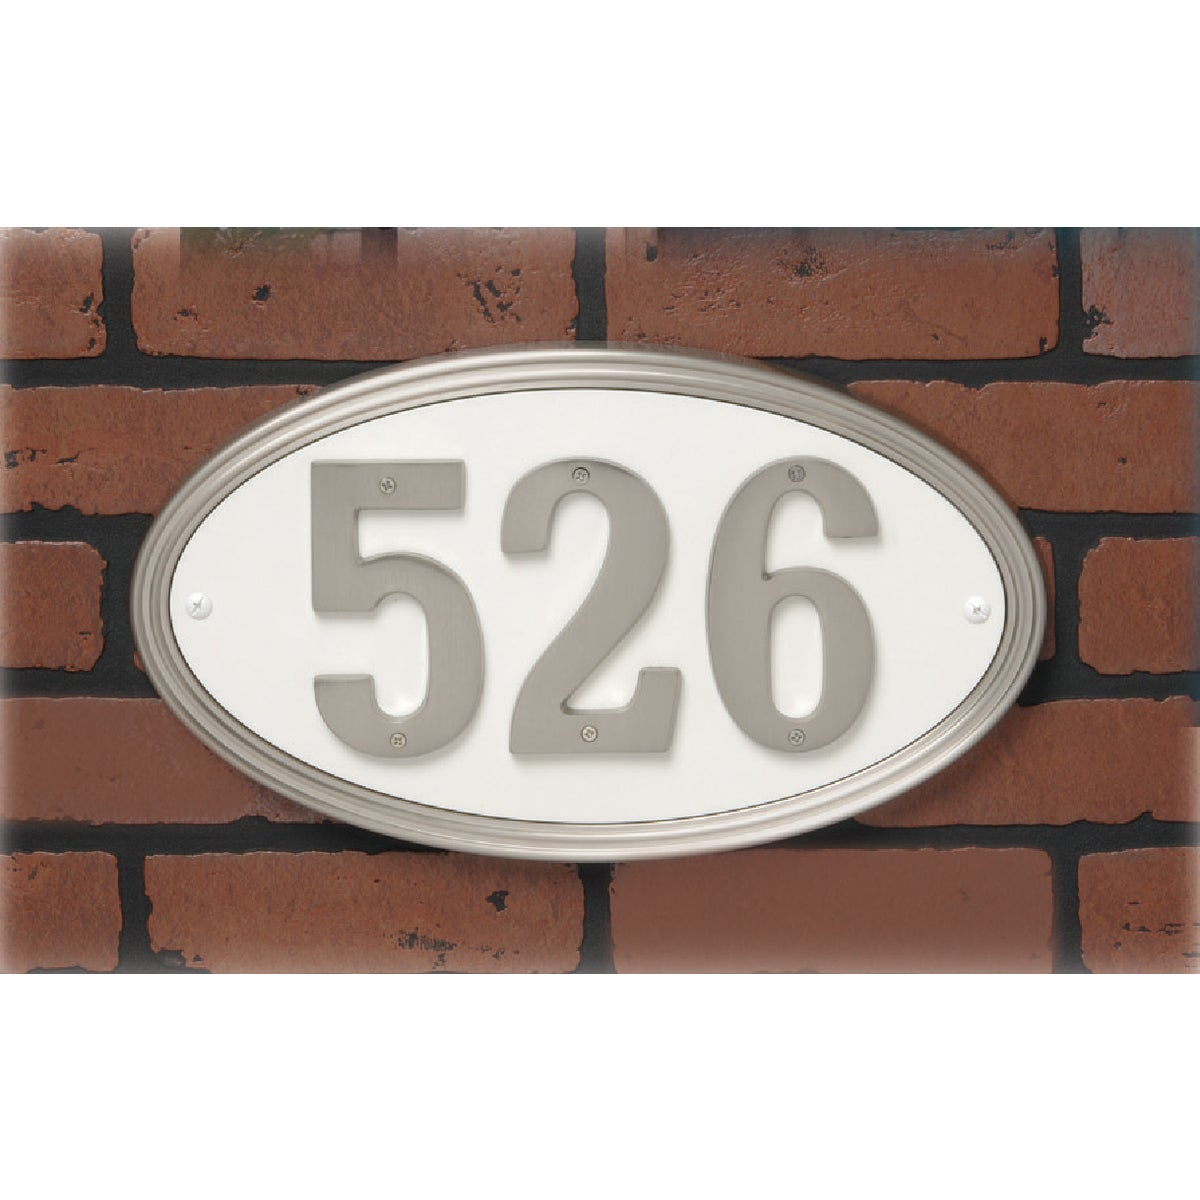 SN OVAL ADDRESS PLAQUE - AK-451 by Hy Ko Prods Co